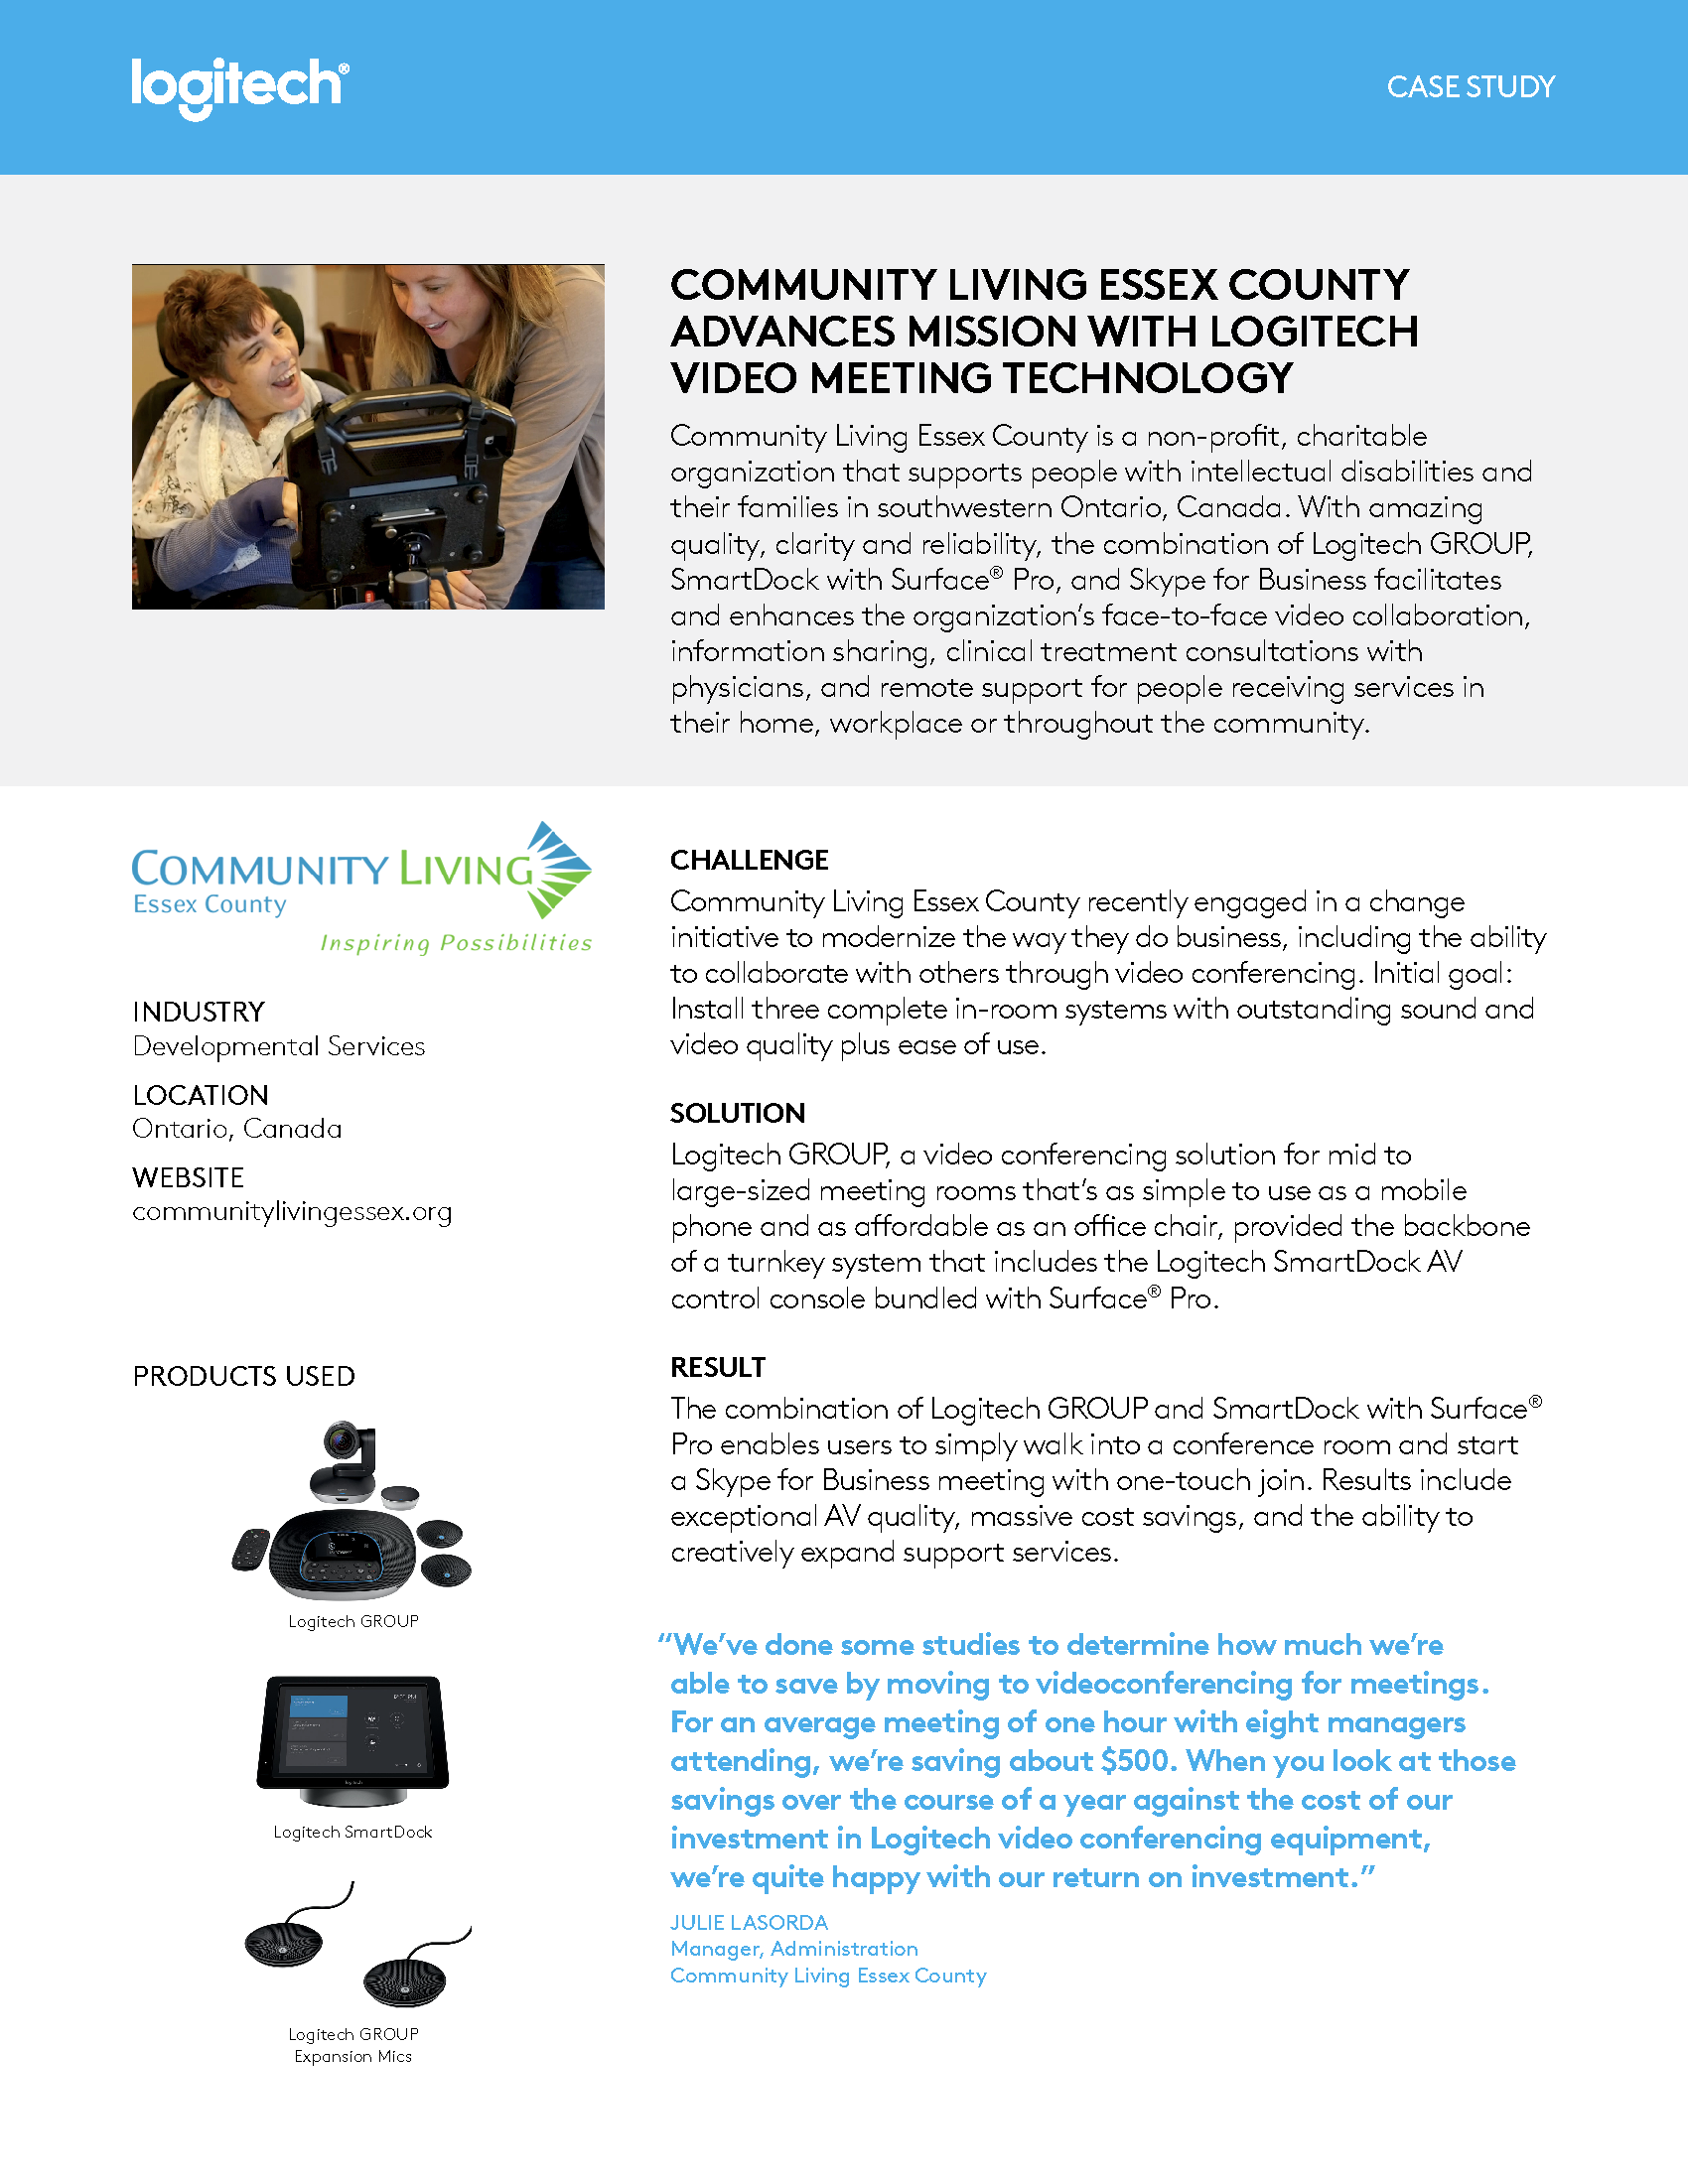 ontario pump company case study solutions Read case studies on how bbsi has successfully provided management solutions and hr consulting services that save companies time and money.